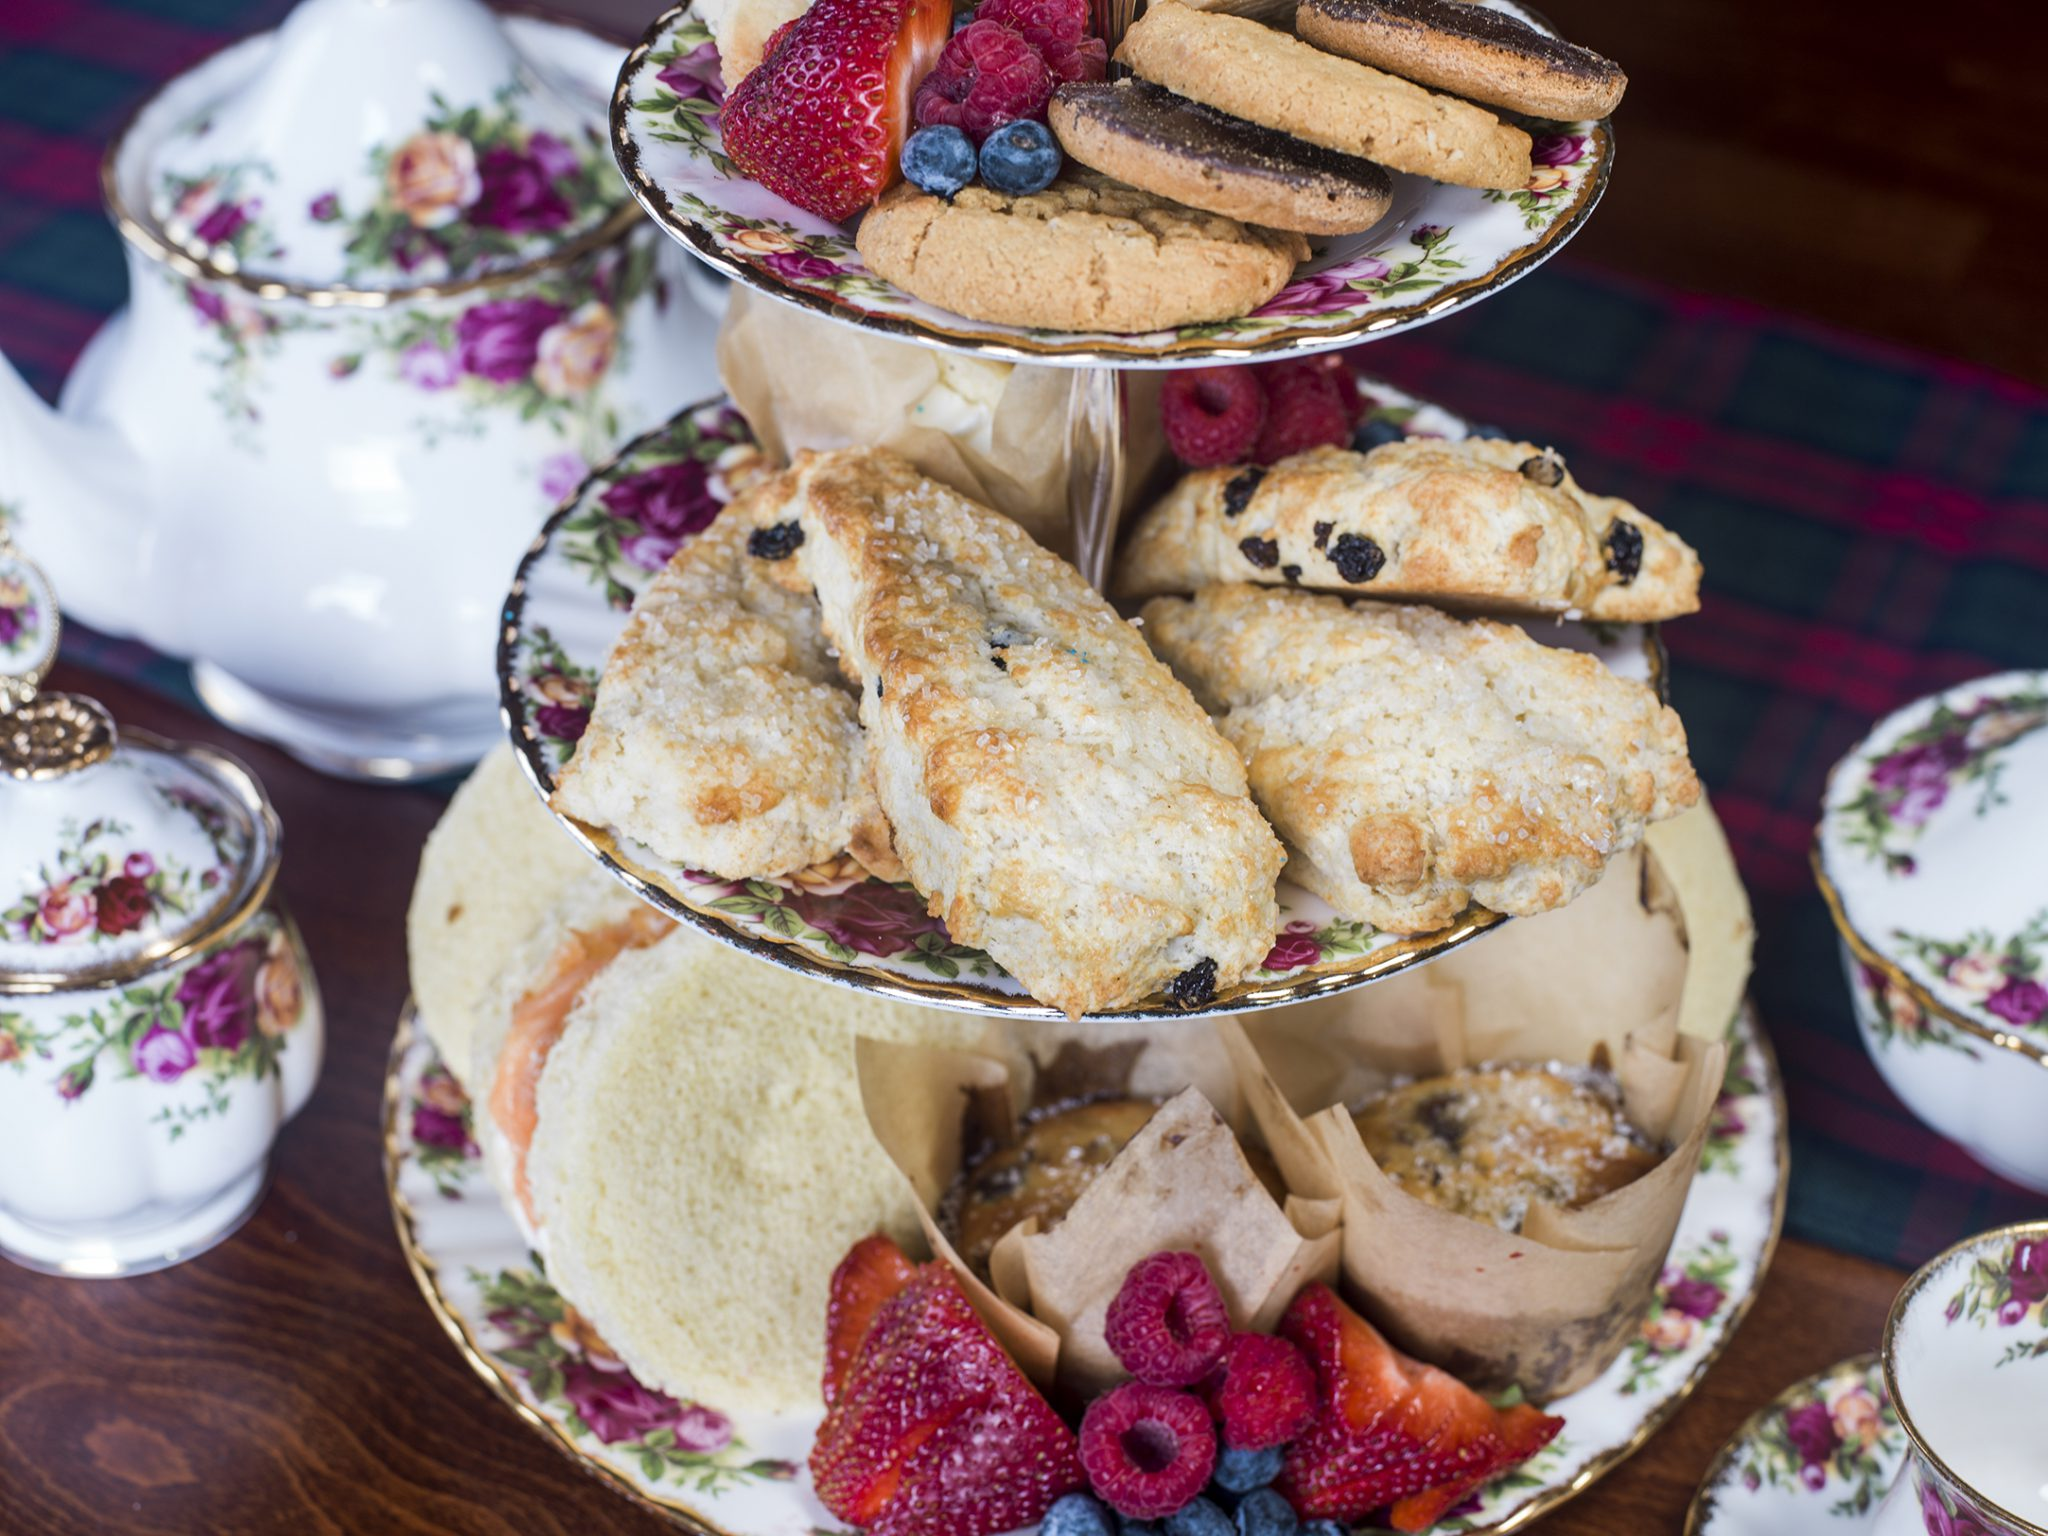 Menu – Scottish Afternoon Tea